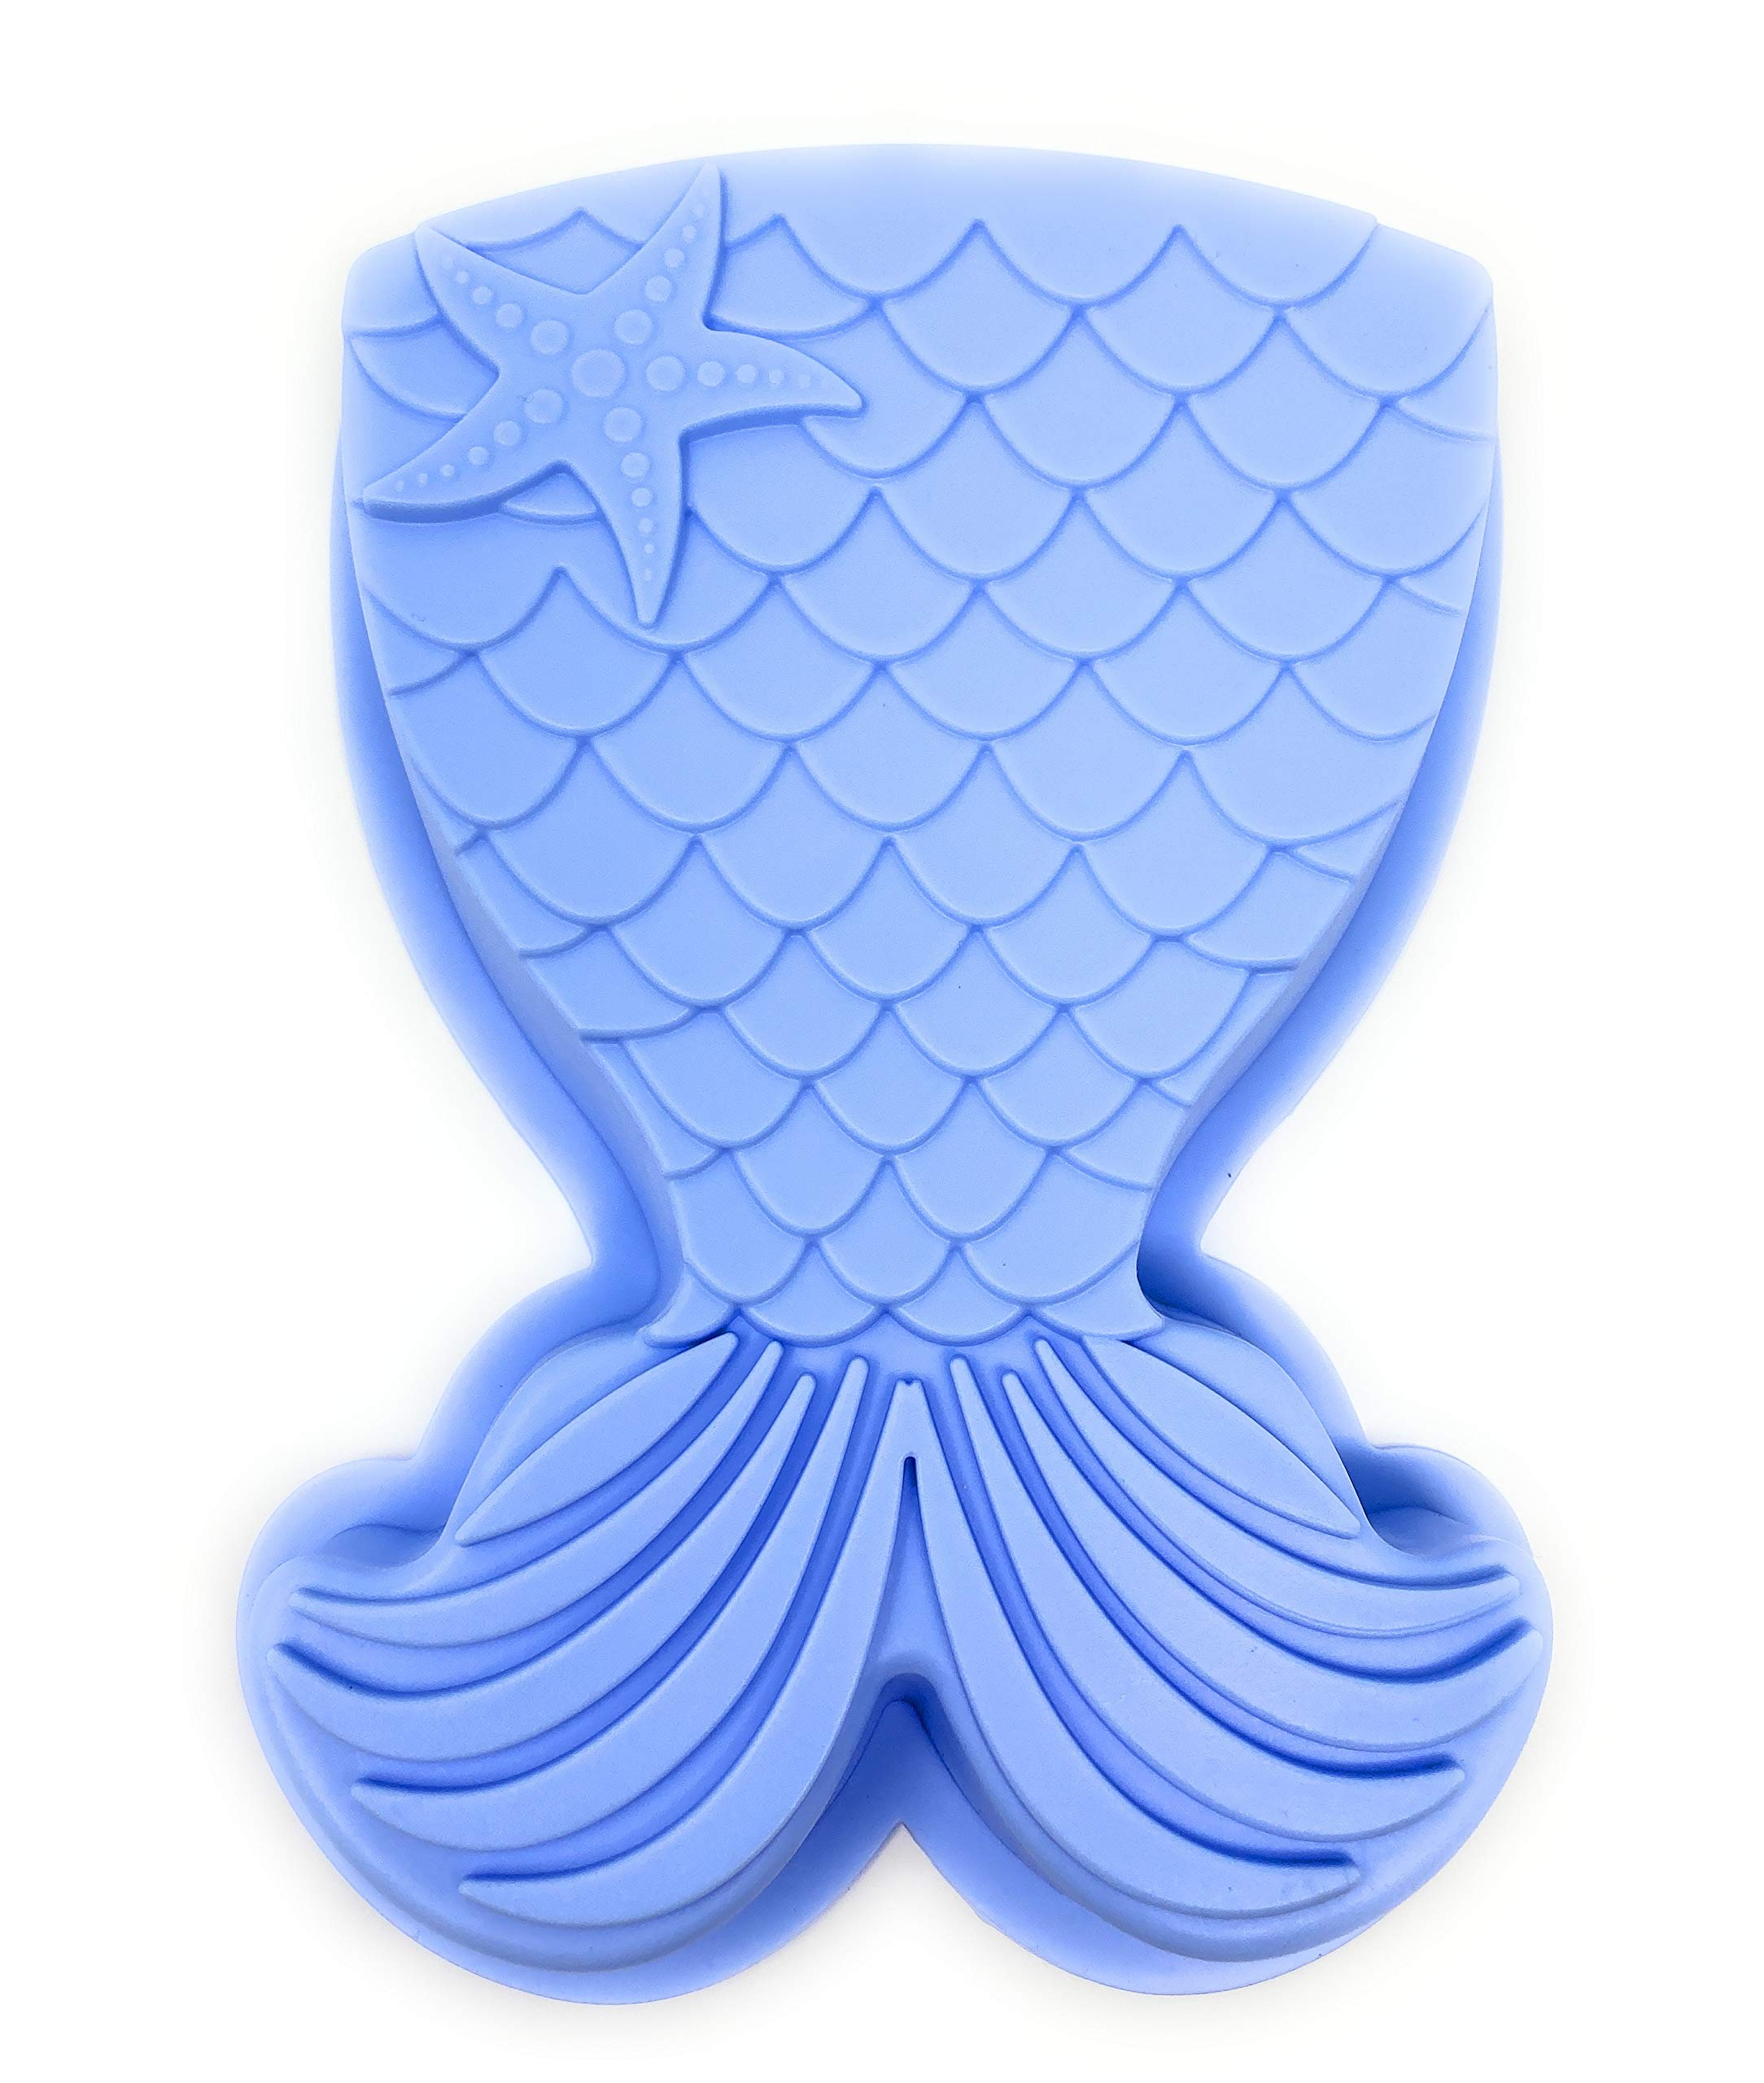 Mermaid Cake Pan Features Silicone Mermaid Tail with Seashell: Colors May Vary